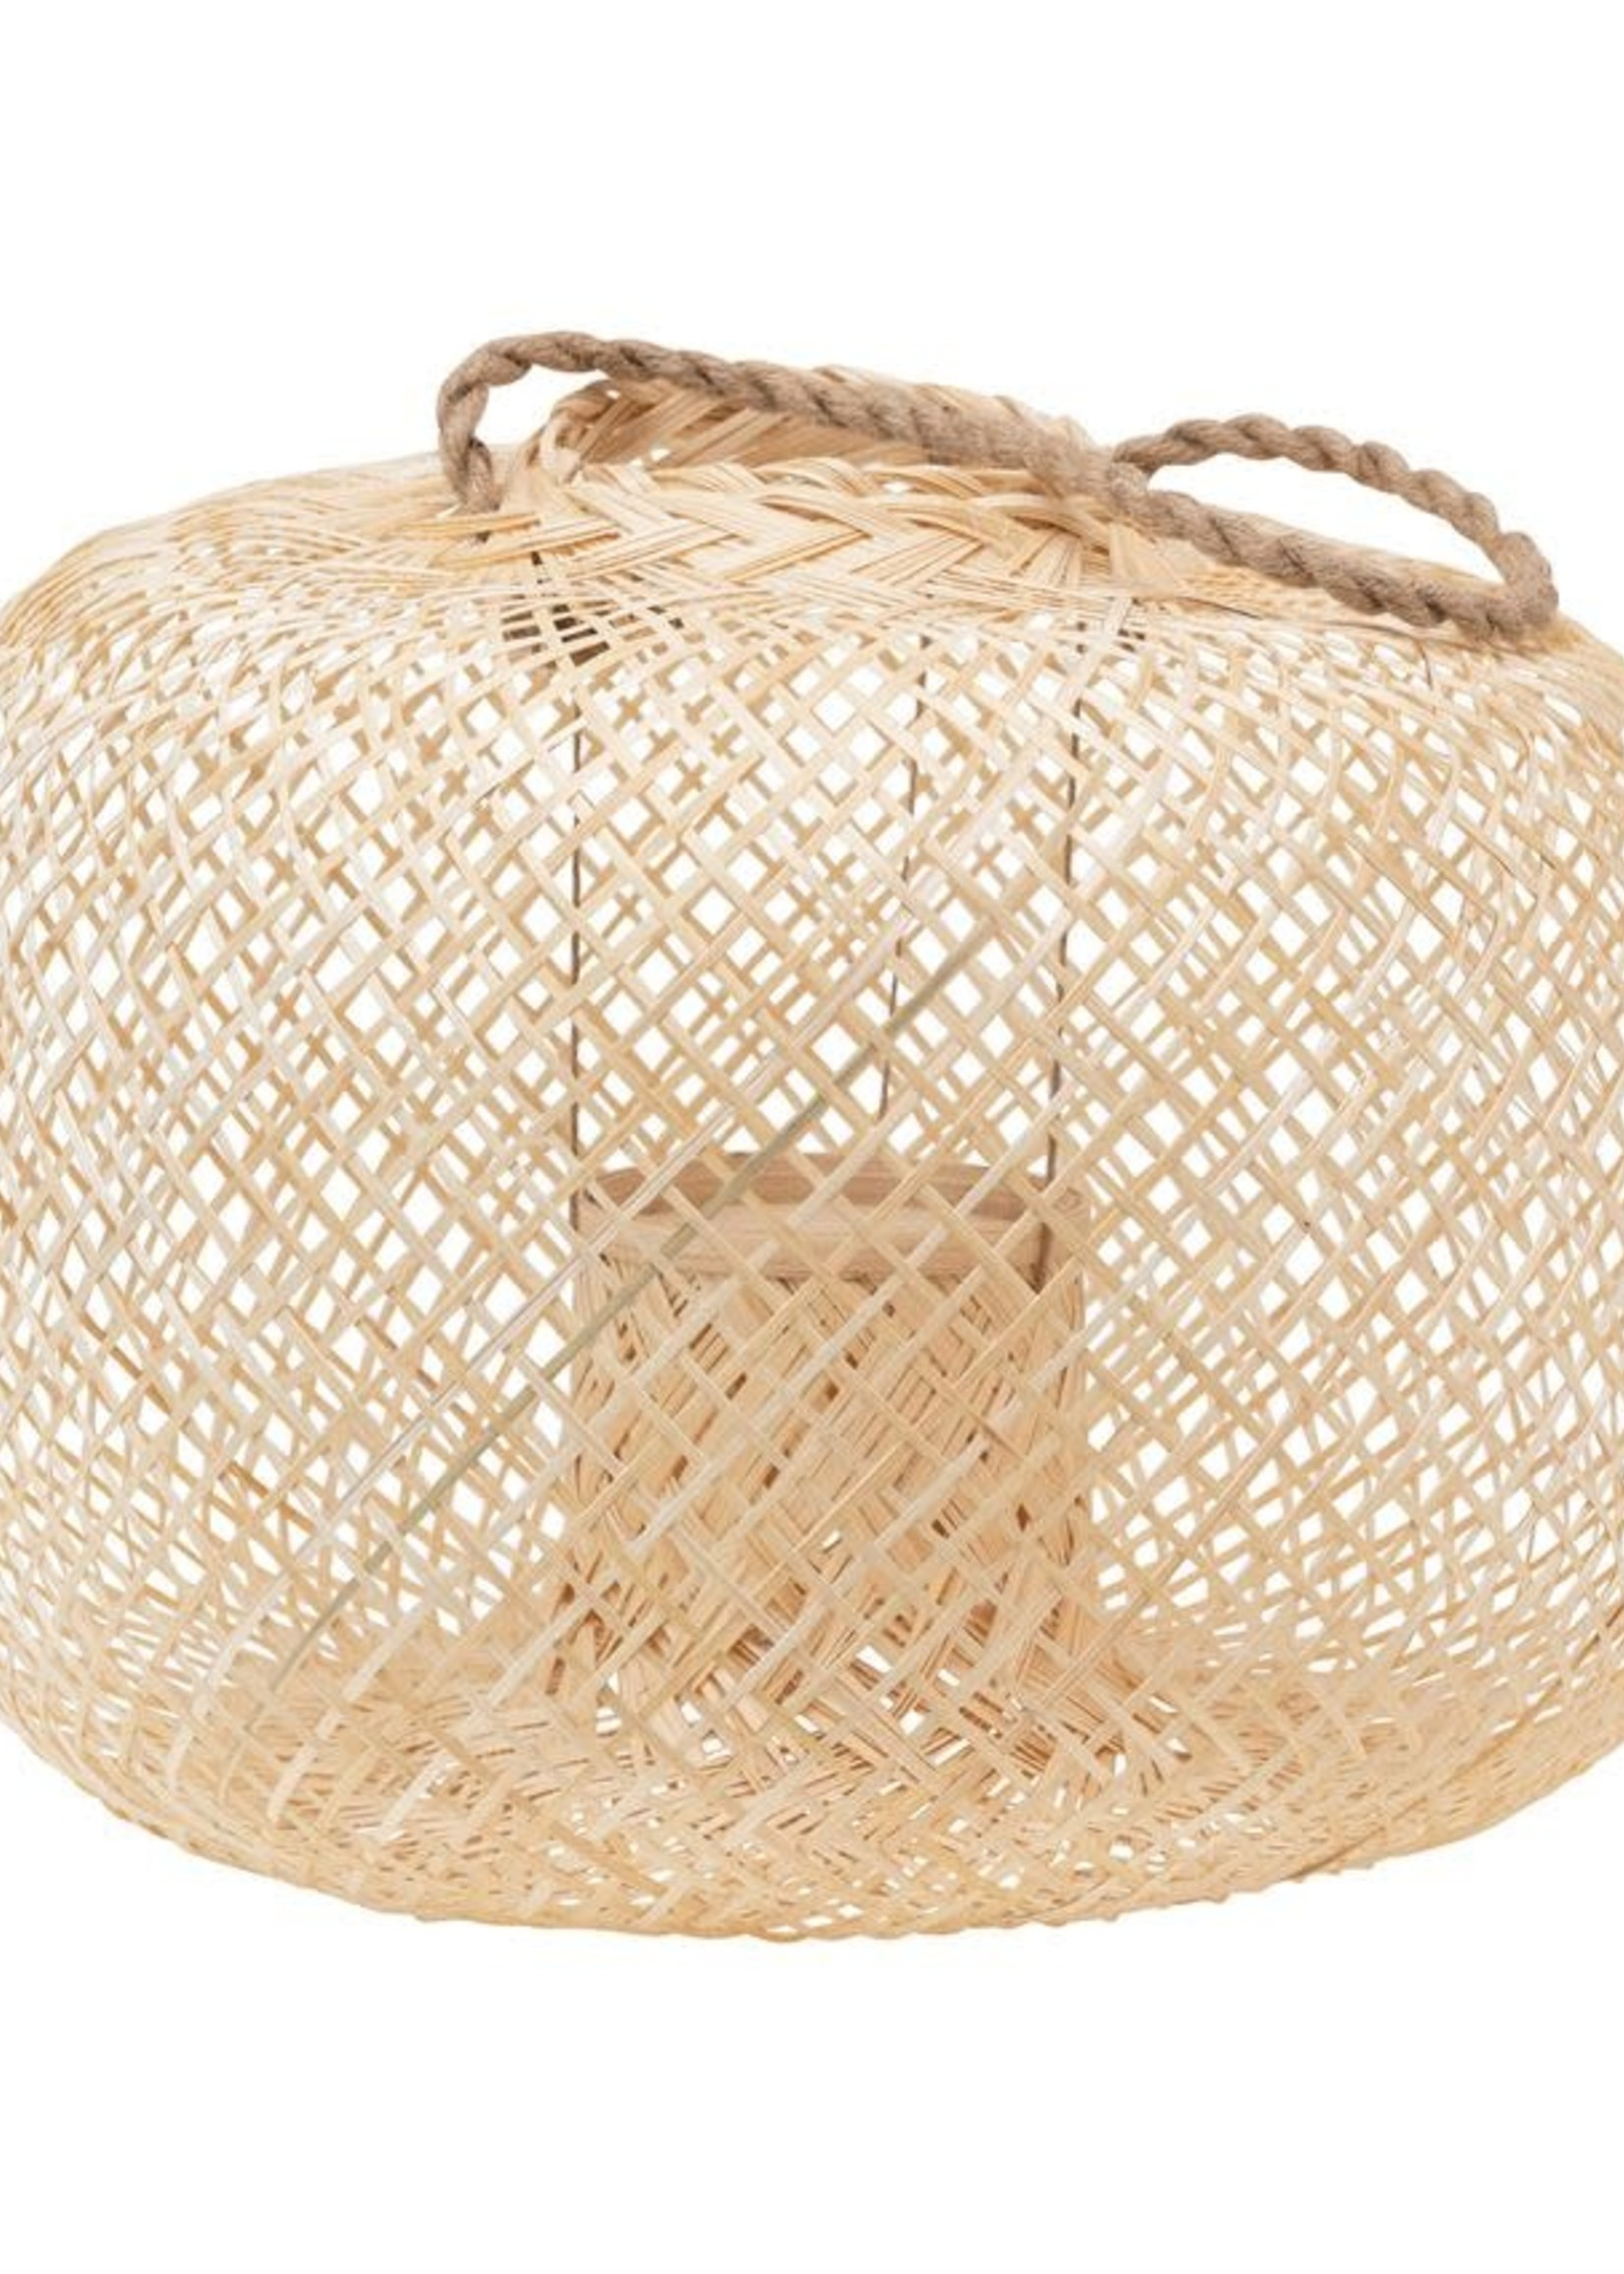 Hand-Woven Bamboo Lantern with Jute Handle & Glass Insert, Natural